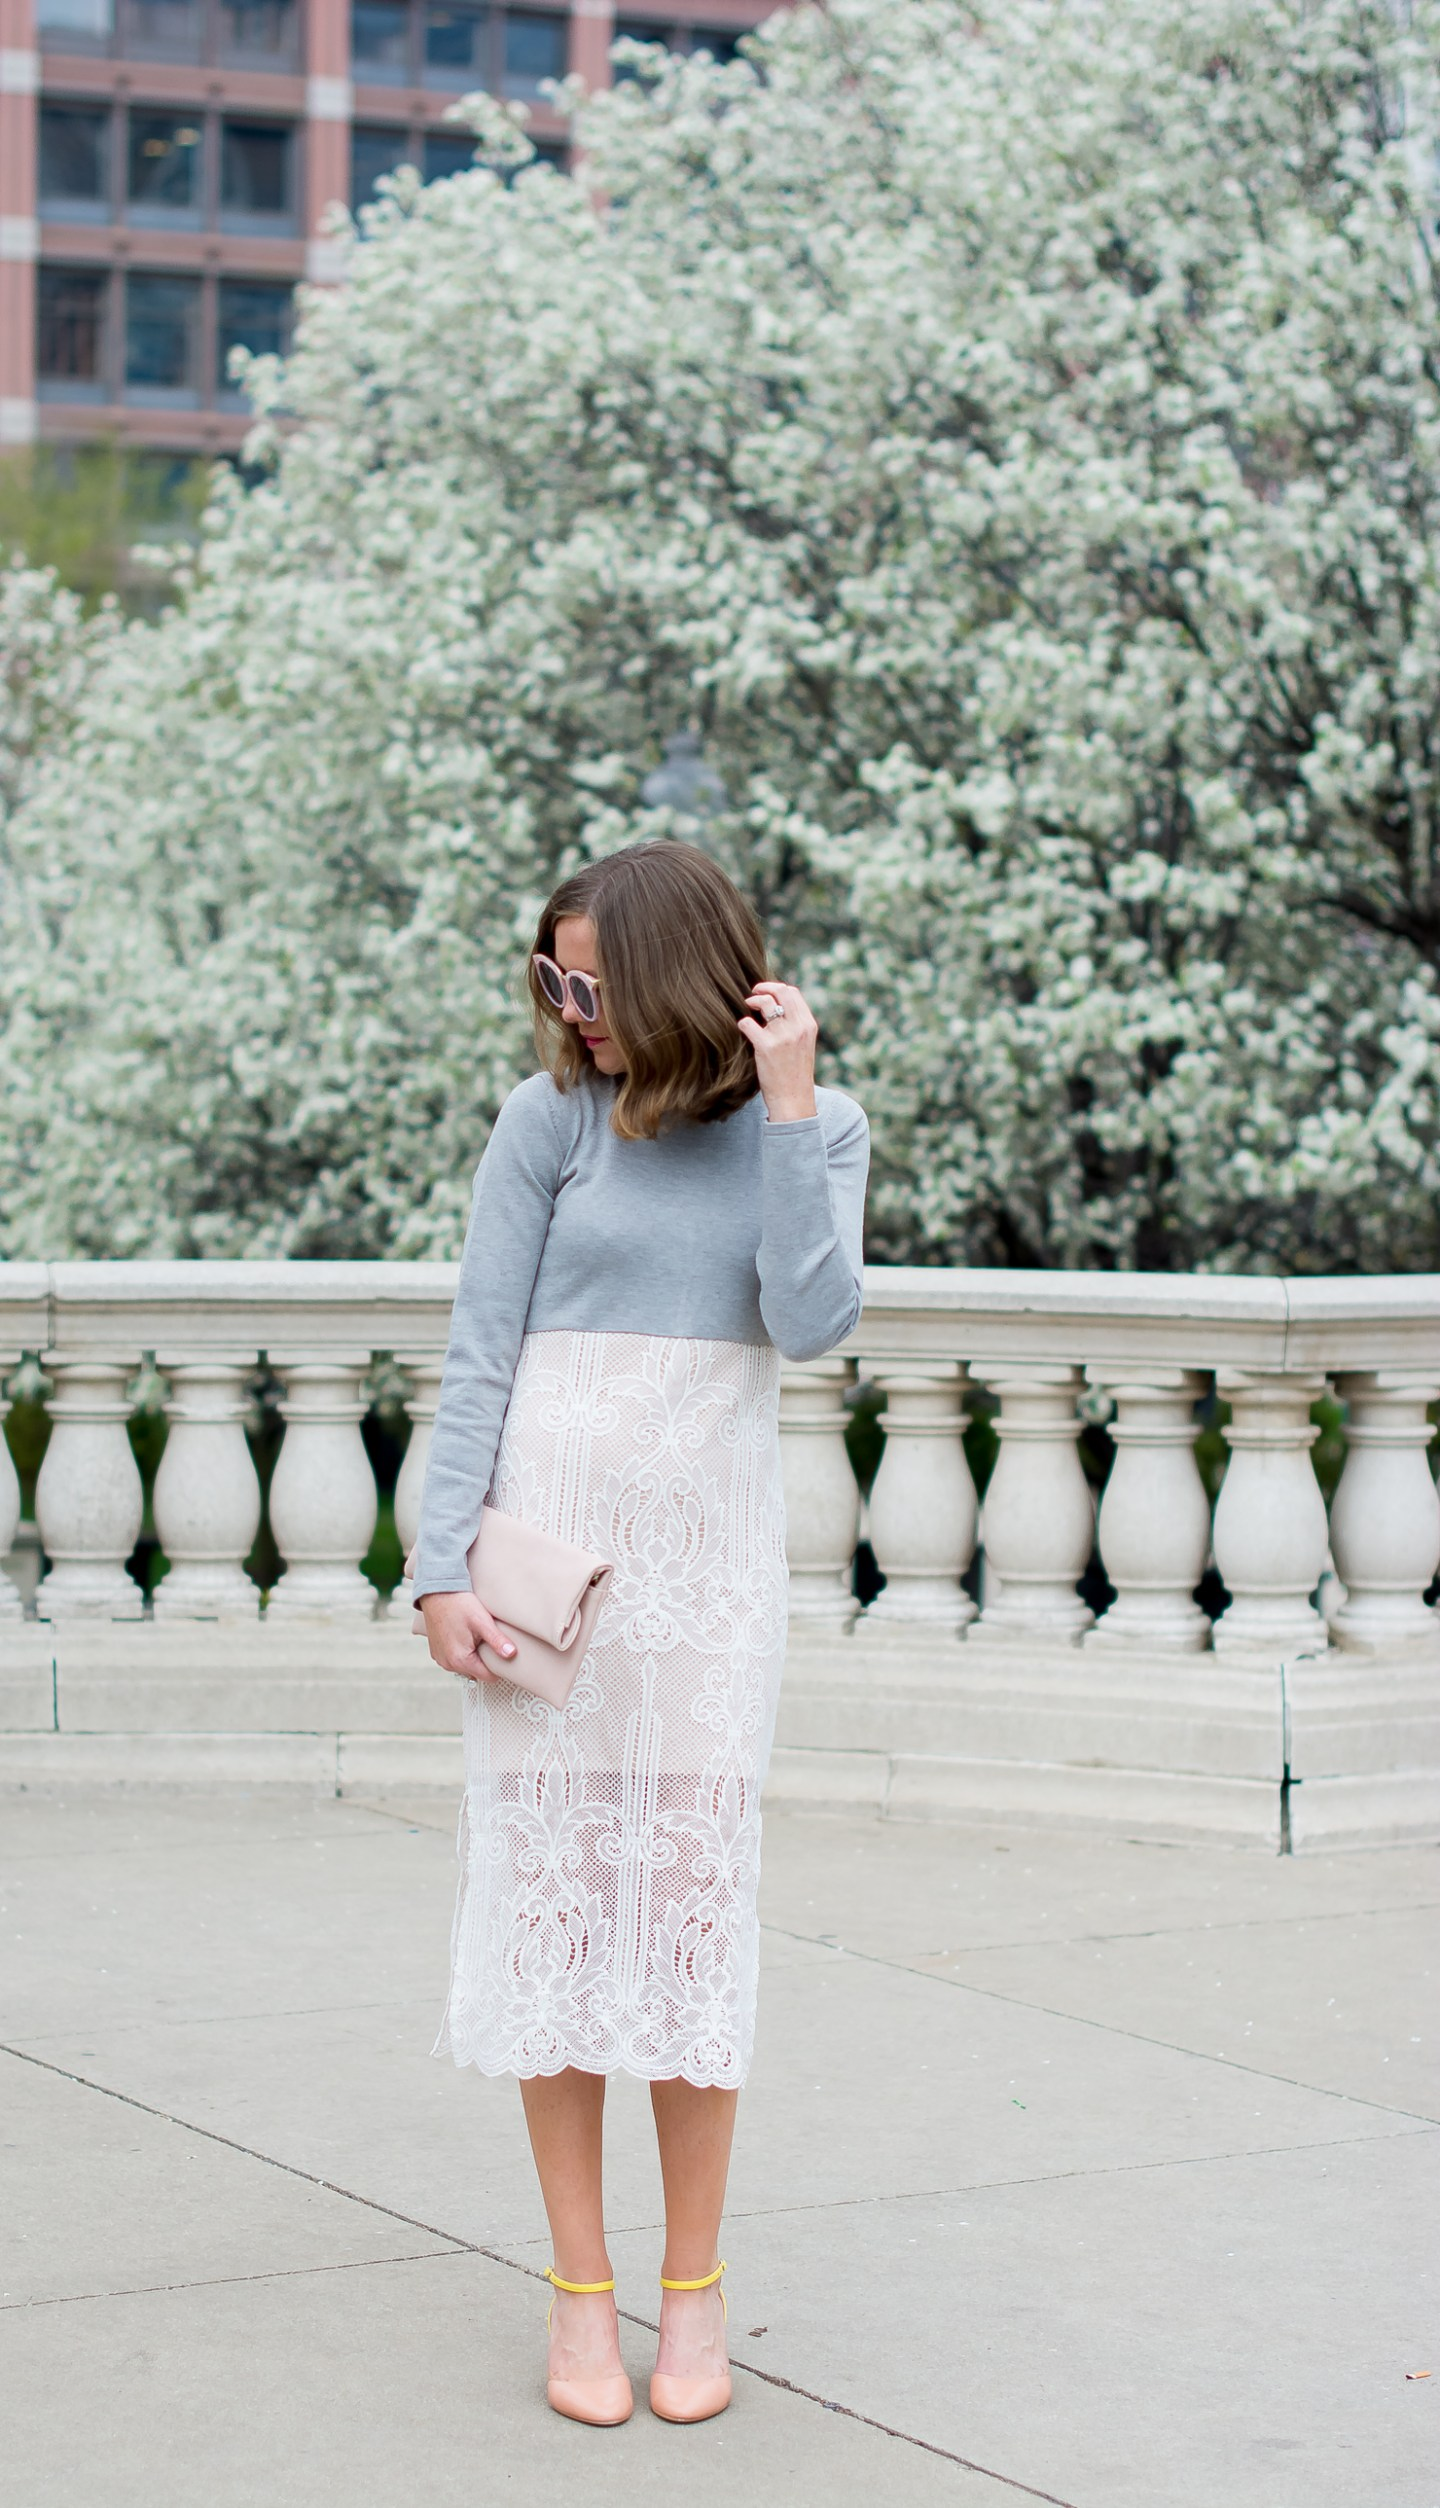 alterre-customizable-shoes-endless-rose-lace-sweater-dress-pink-marble-sunglasses-blush-foldover-clutch-LR